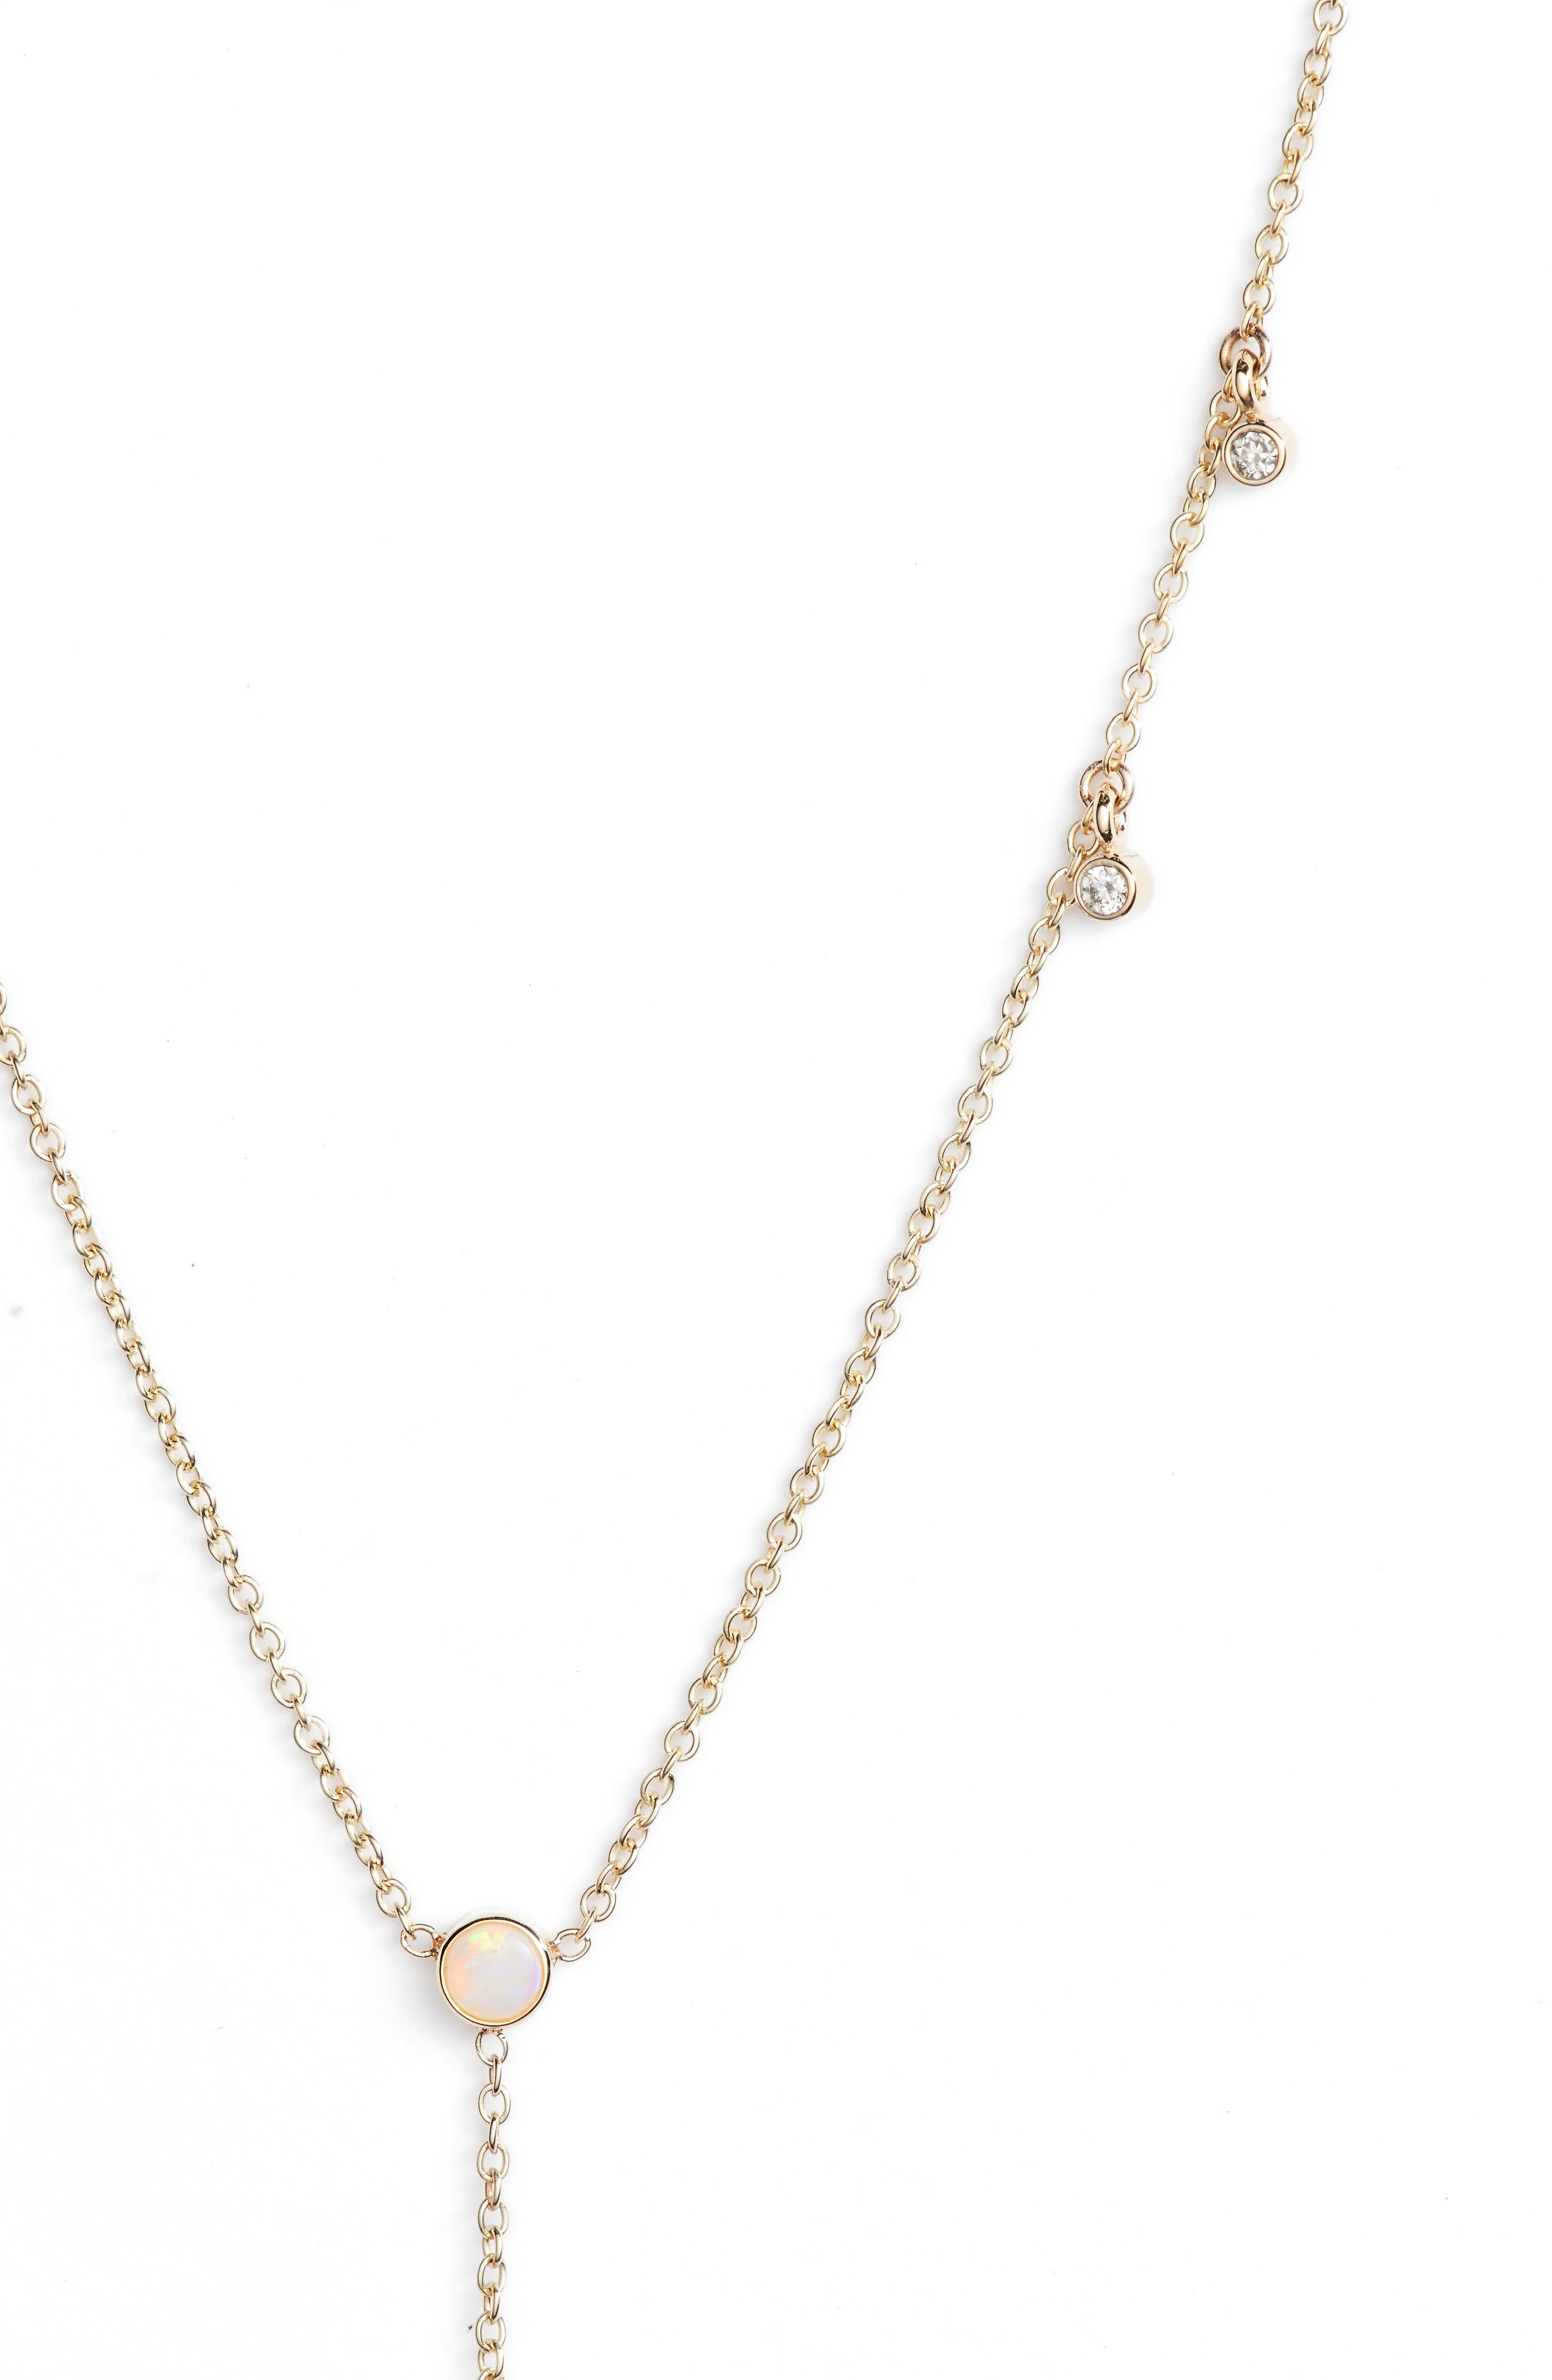 Diamond & Opal Bar Drop Lariat Necklace,                             Alternate thumbnail 2, color,                             YELLOW GOLD